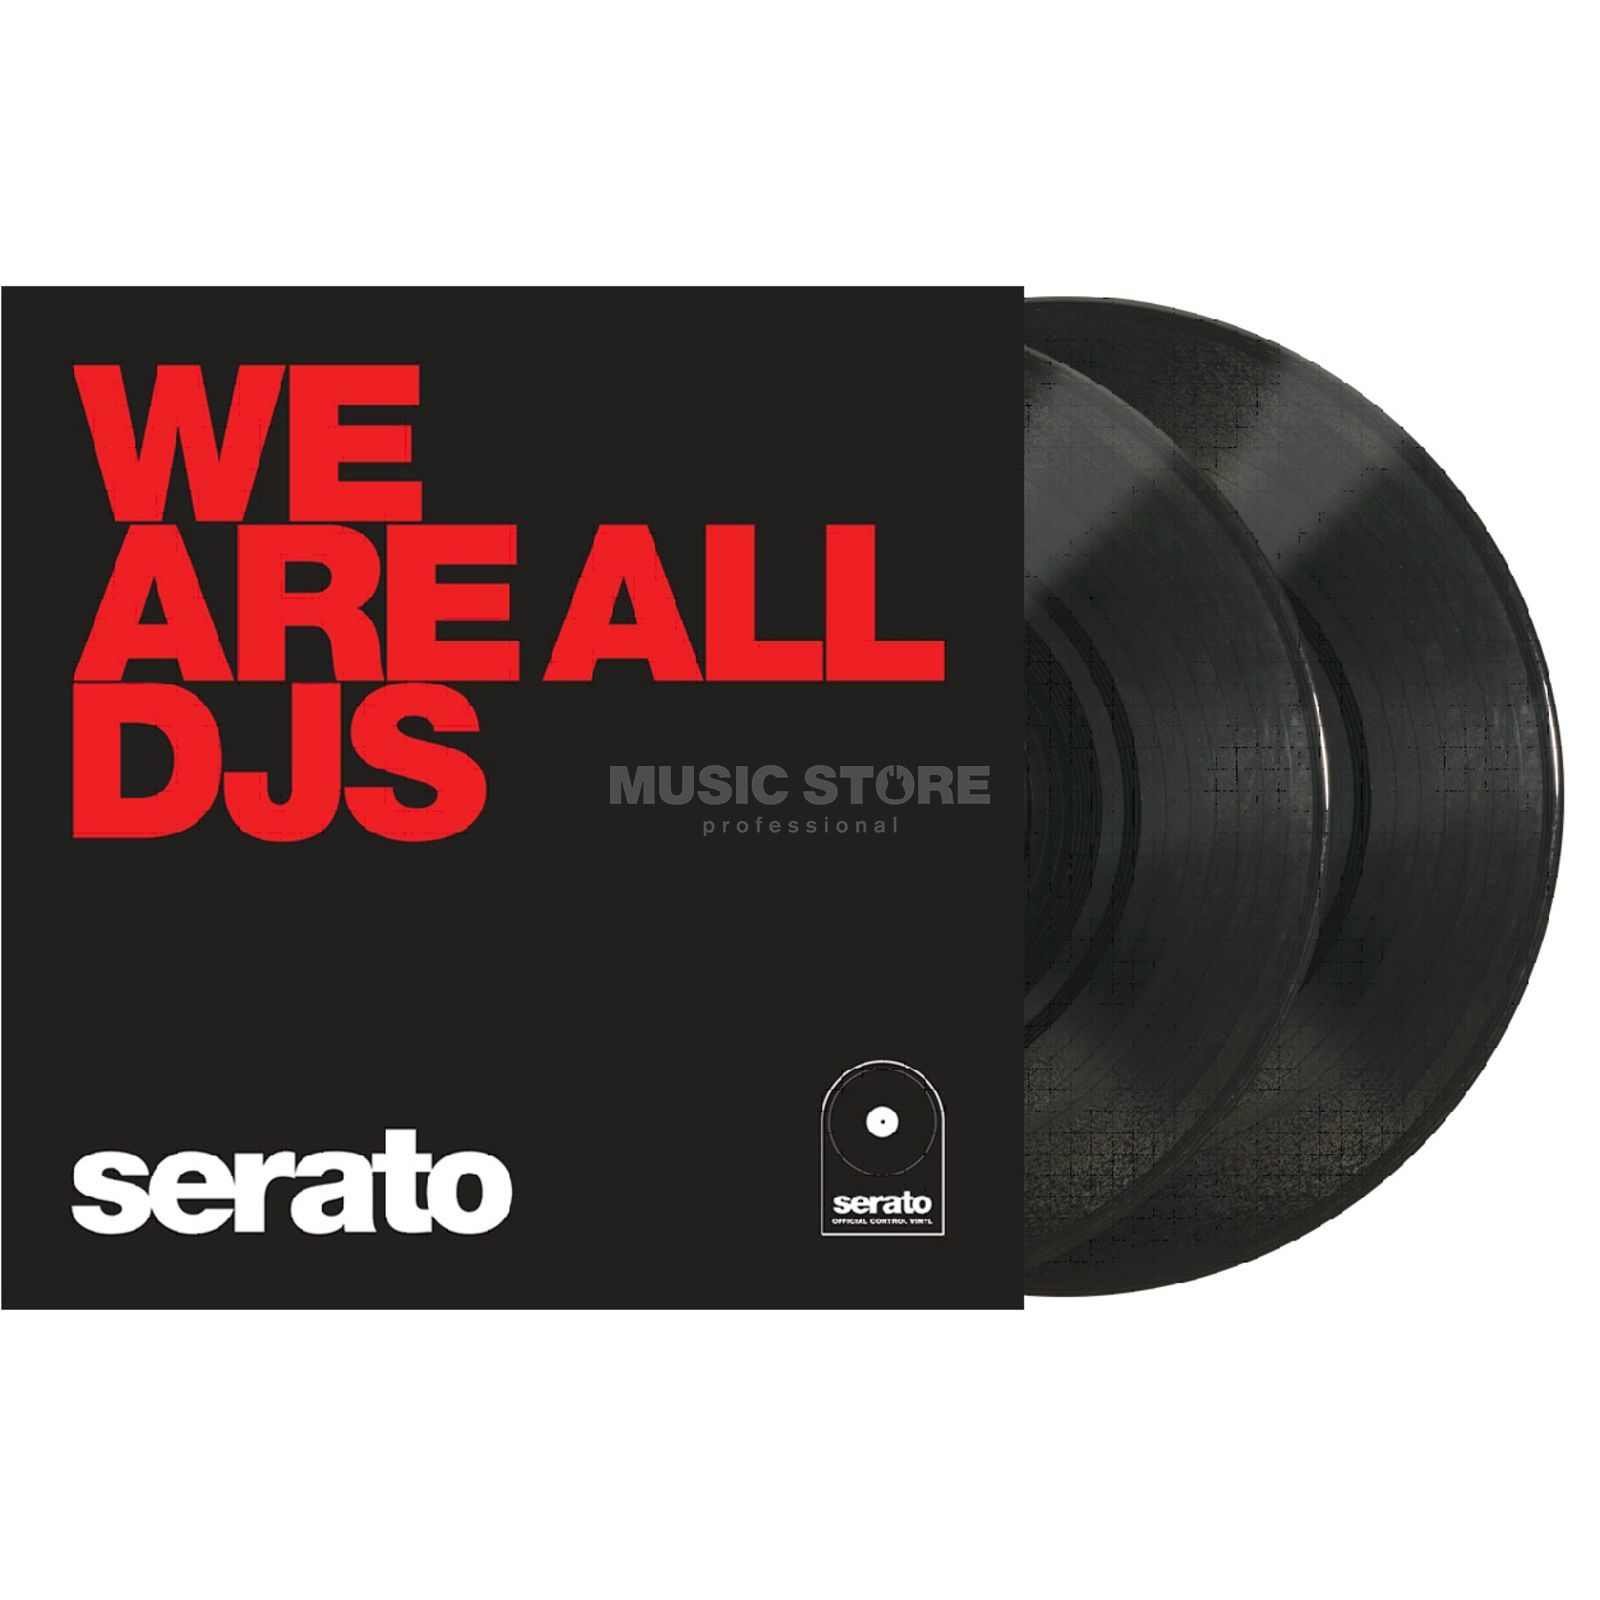 "Serato Manifesto 10"" Control Vinyls schwarz, We are all DJs Produktbild"